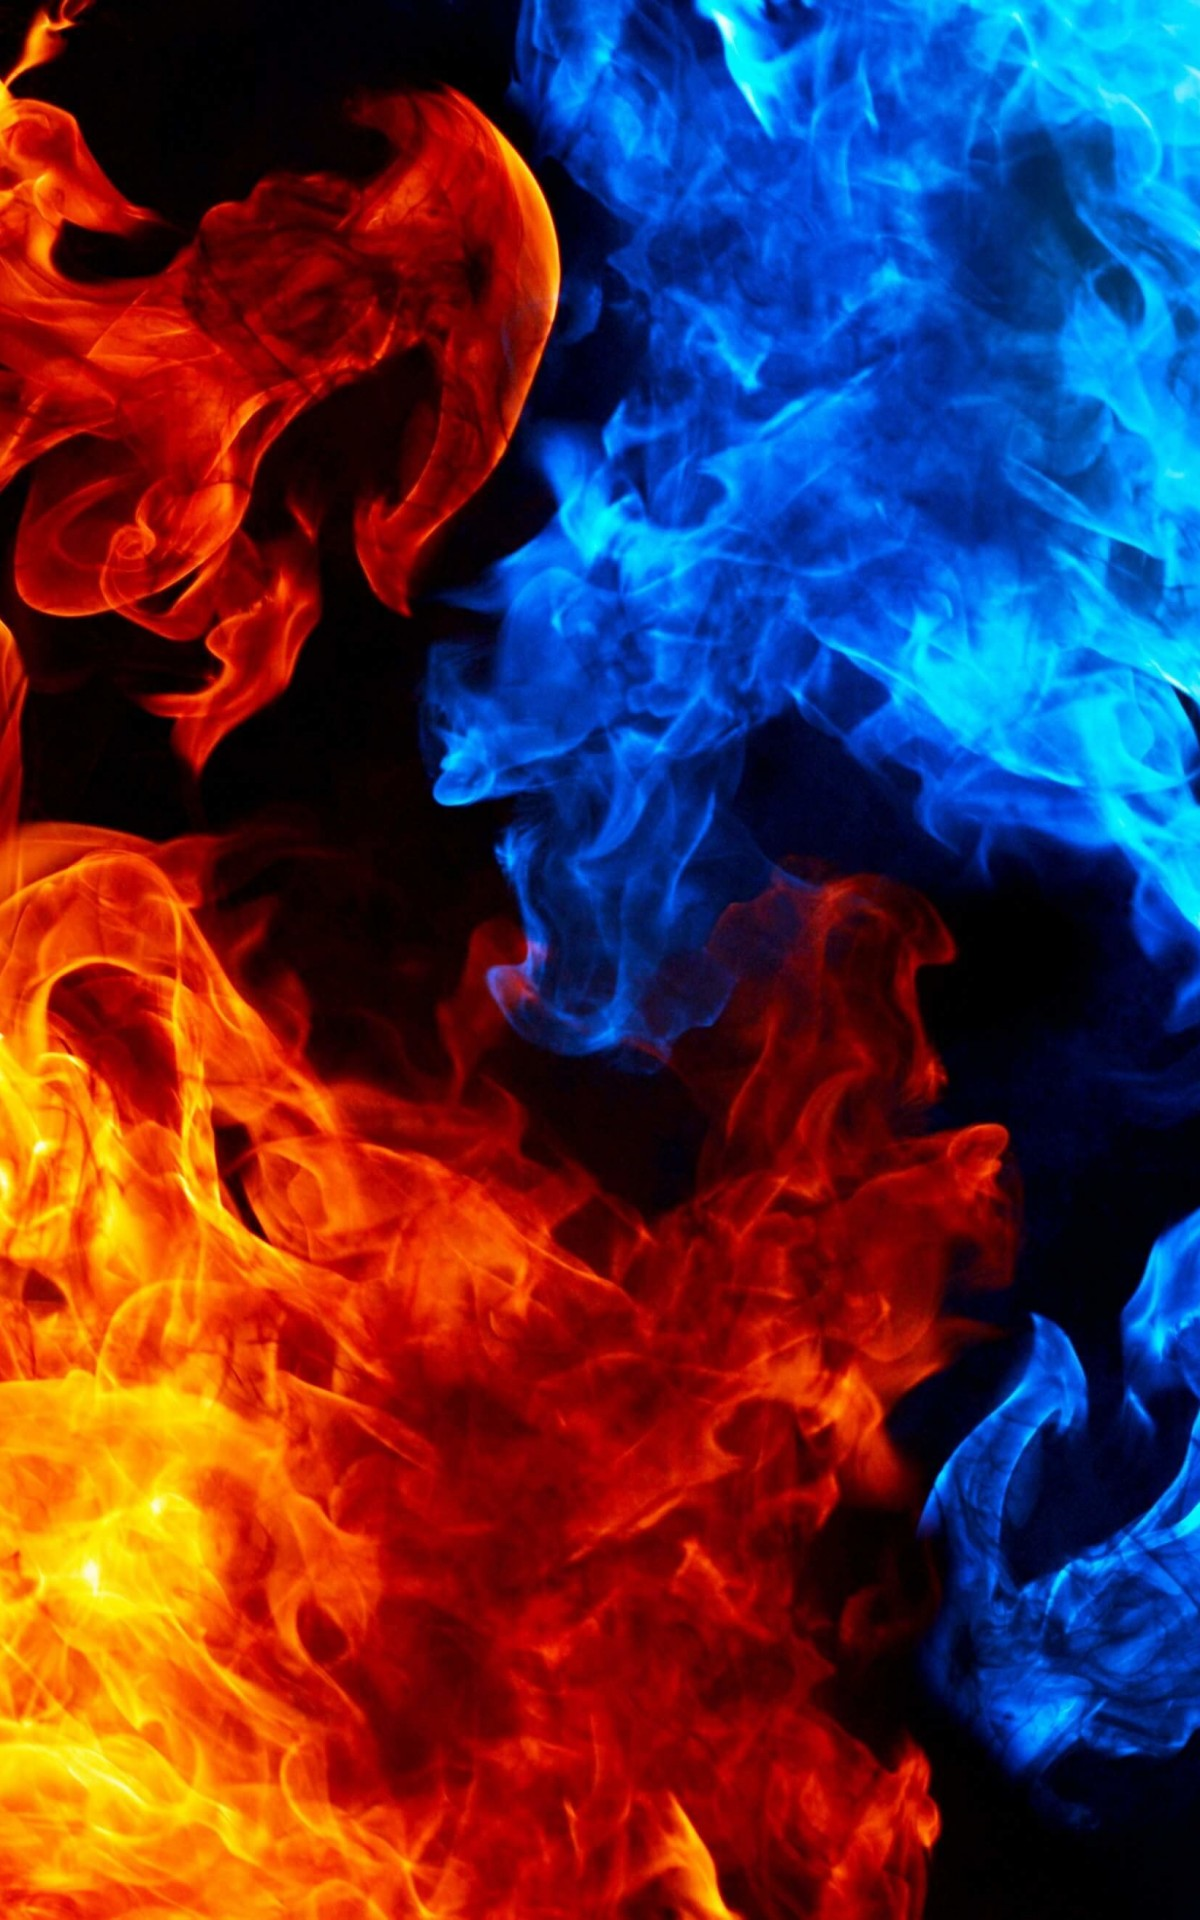 blue and red fire hd wallpaper for kindle fire hdx